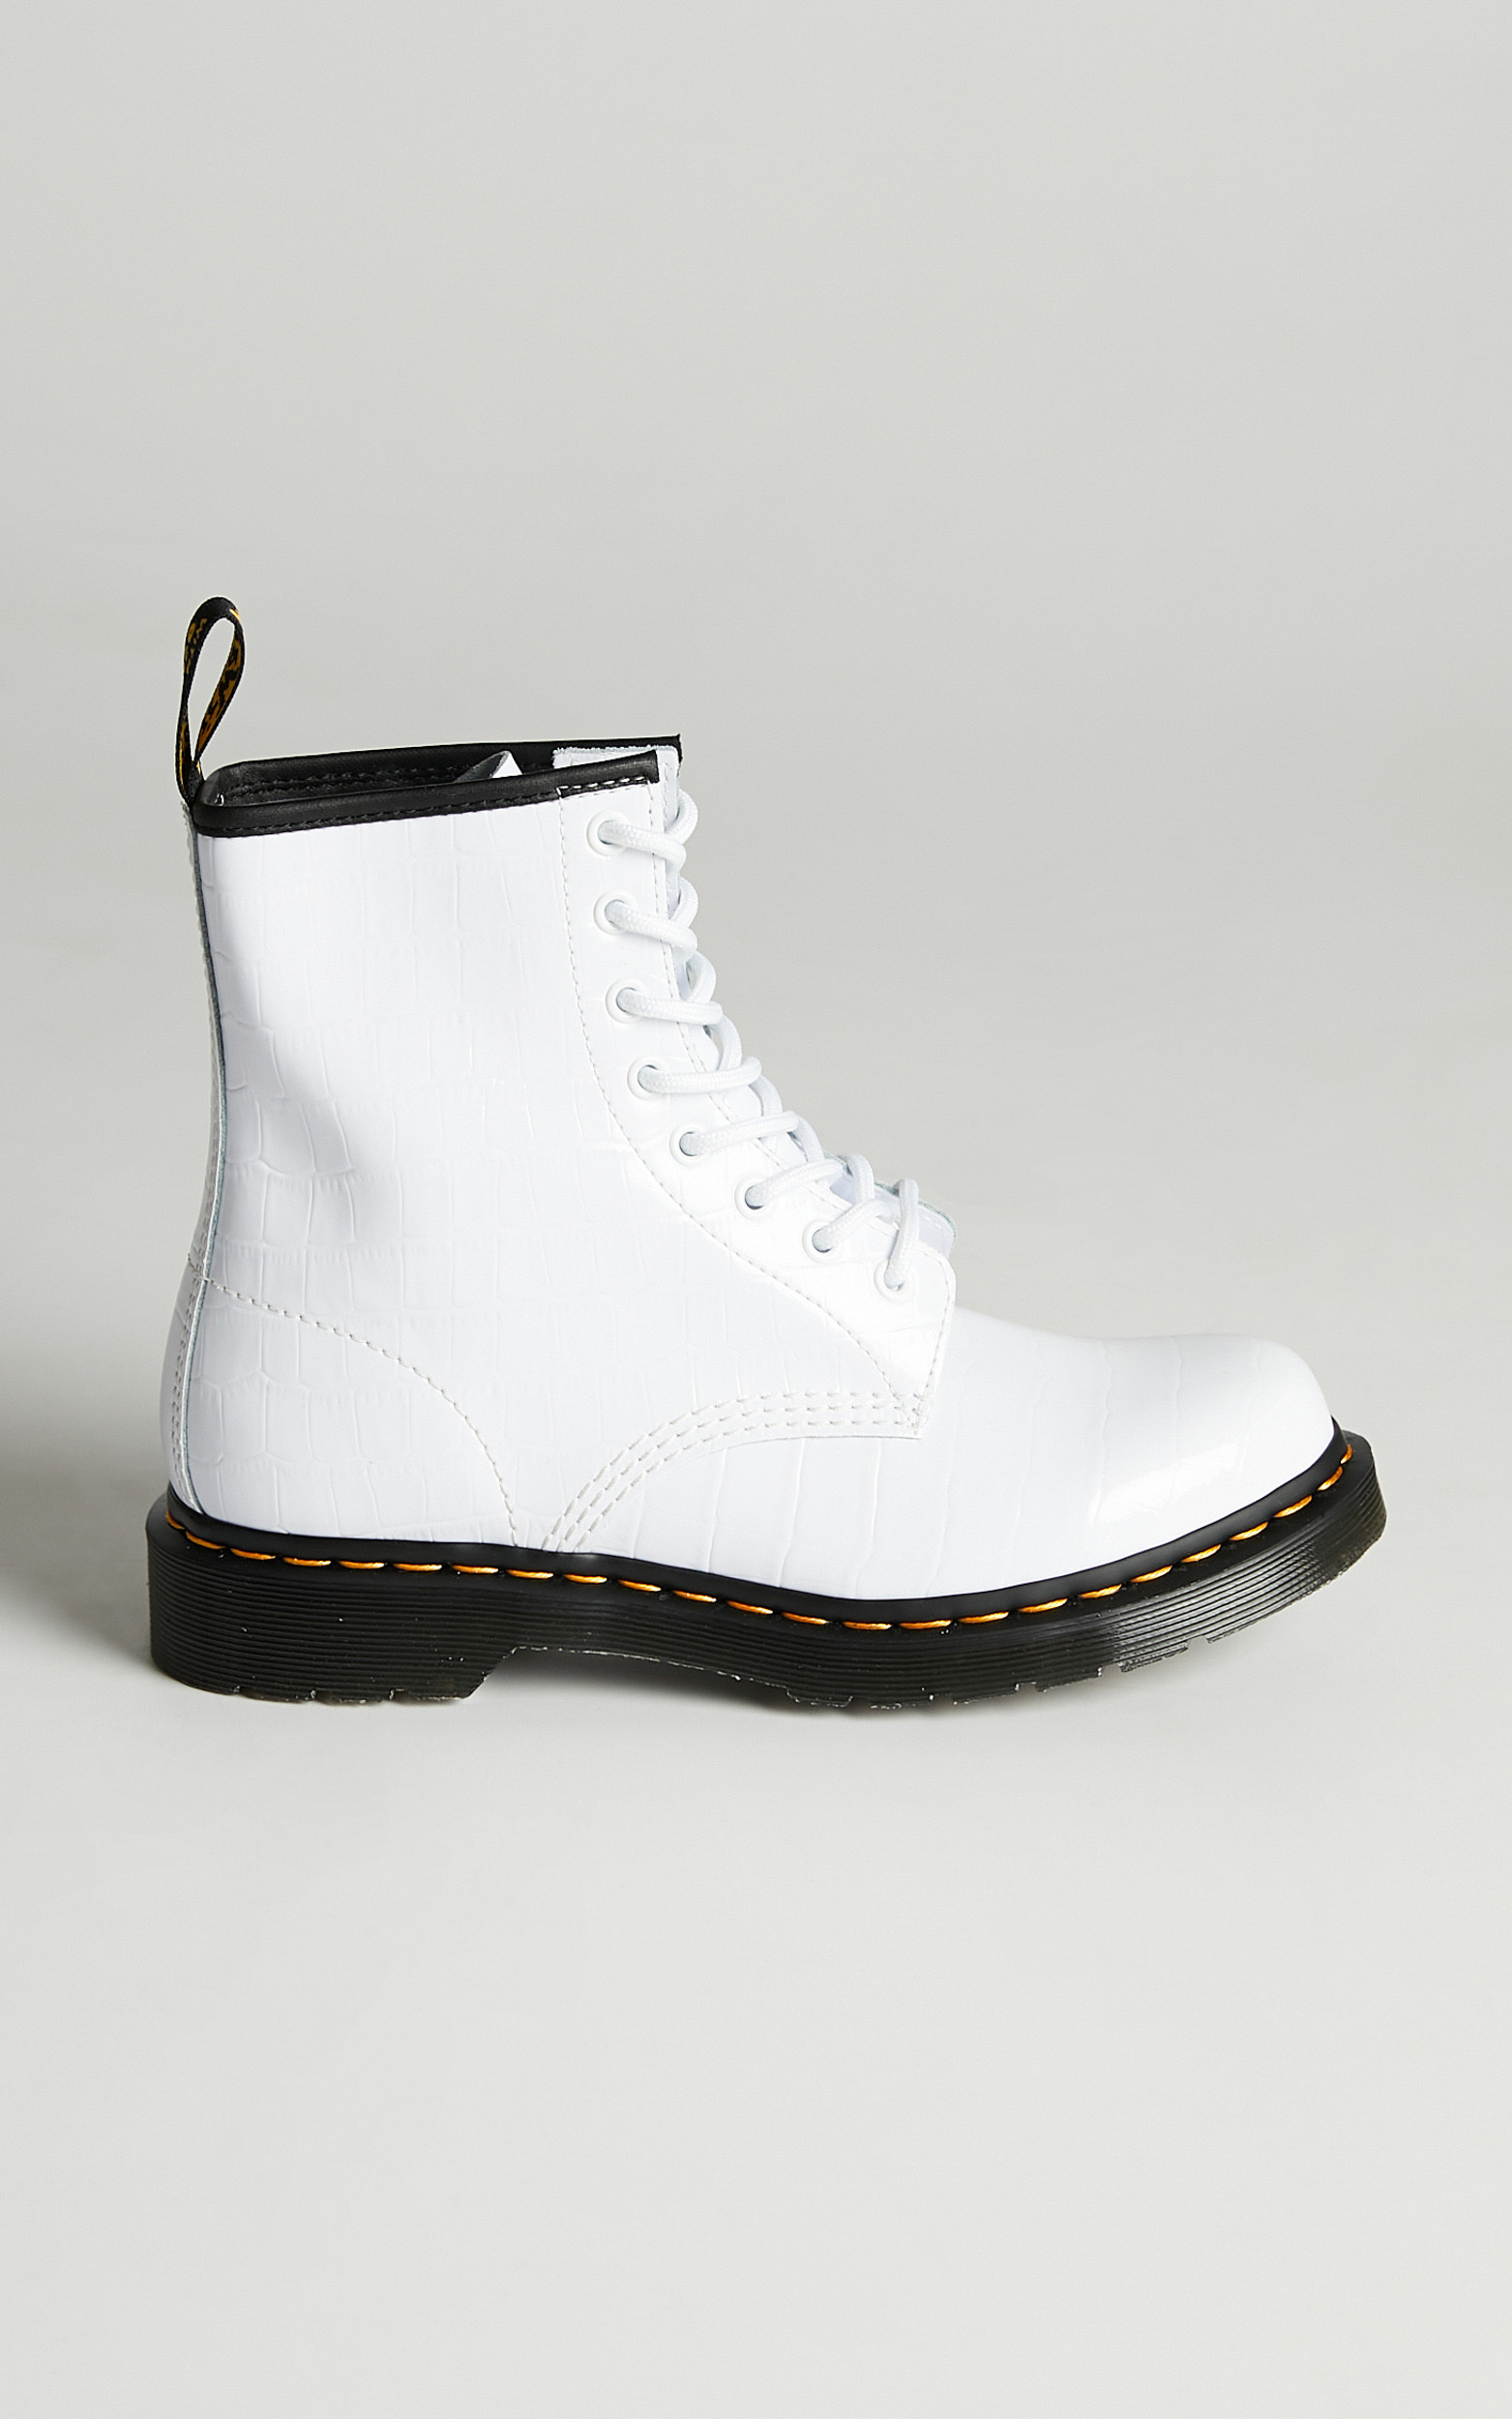 Dr. Martens - 1460 W 8 Eye Boot in White Patent Lamper Croc Emboss - 06, WHT1, hi-res image number null